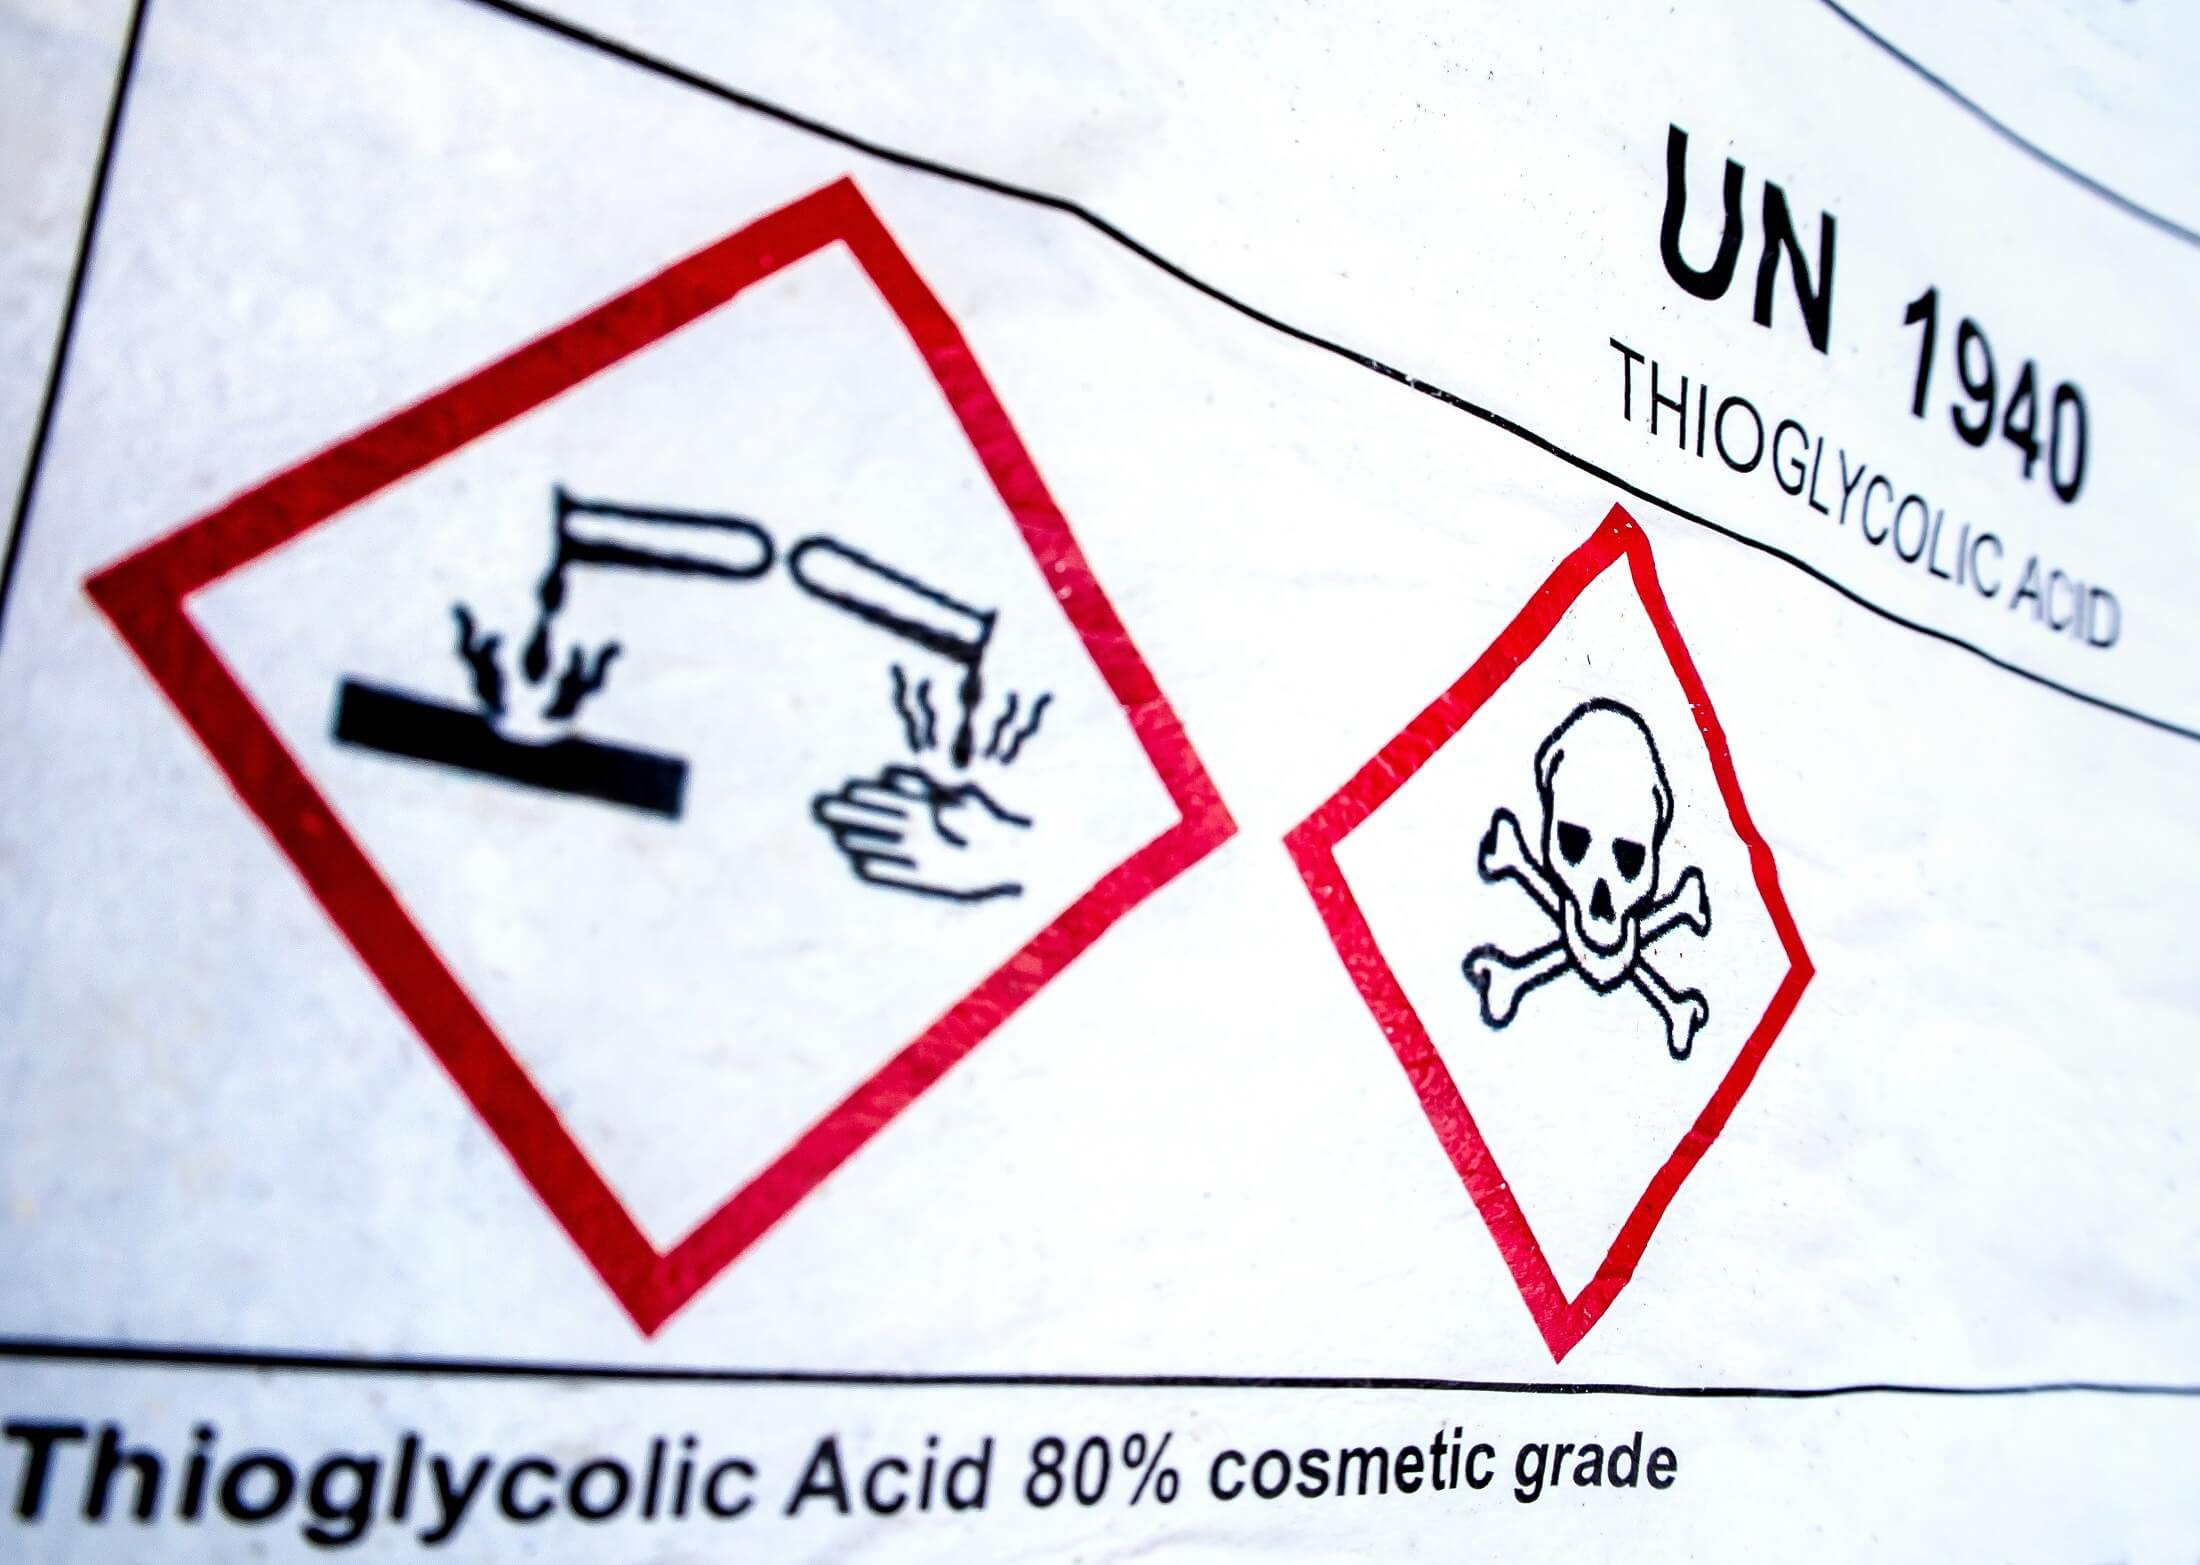 Why are corrosive substances harmful?